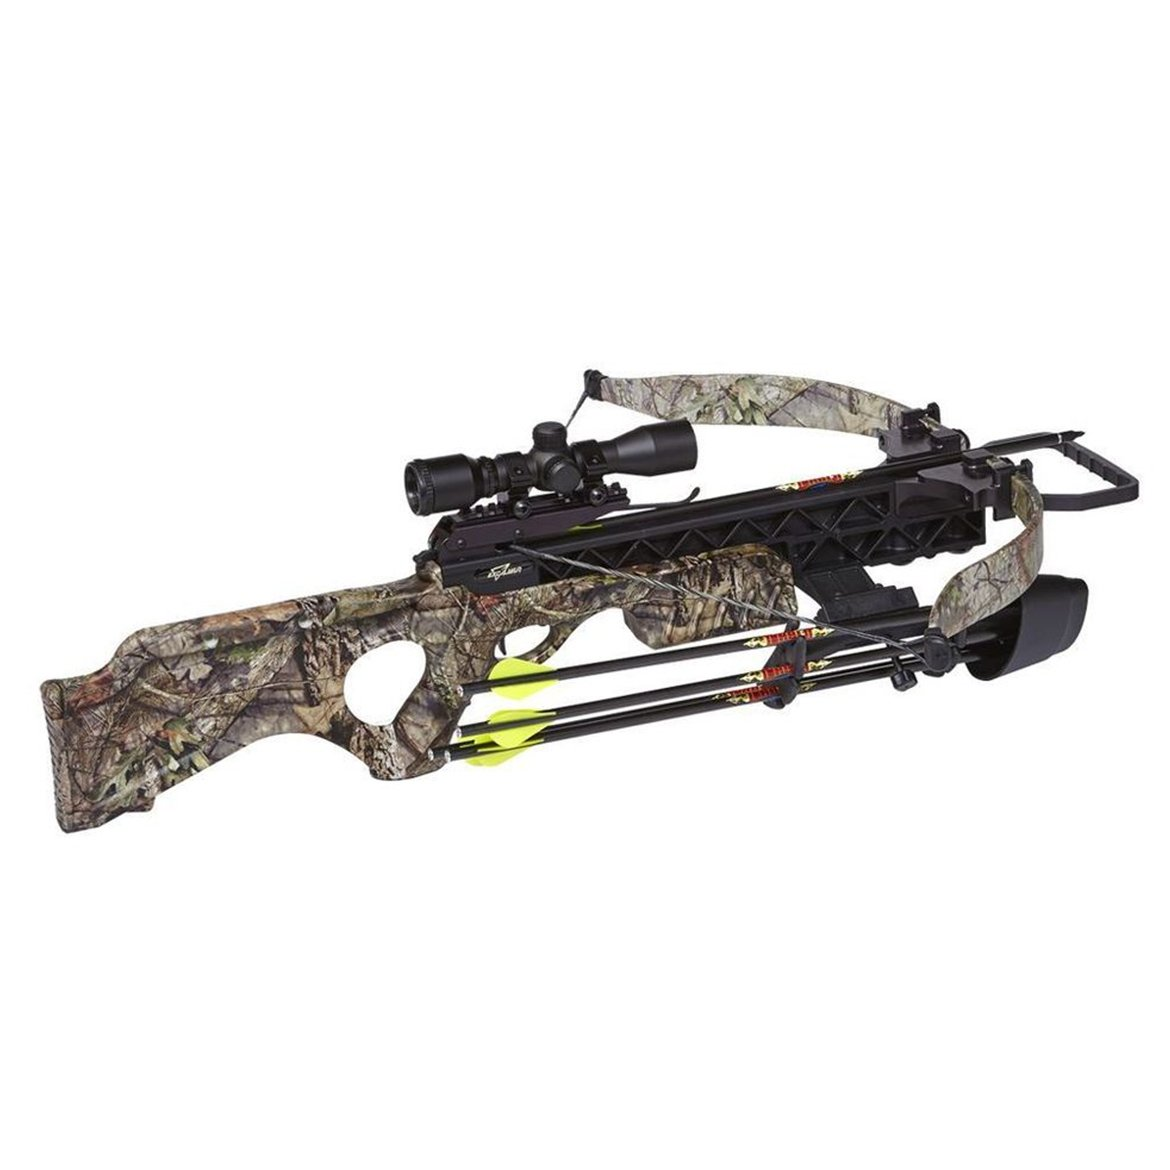 Top 10 Best Crossbow (2020 Review & Buying Guide) 2